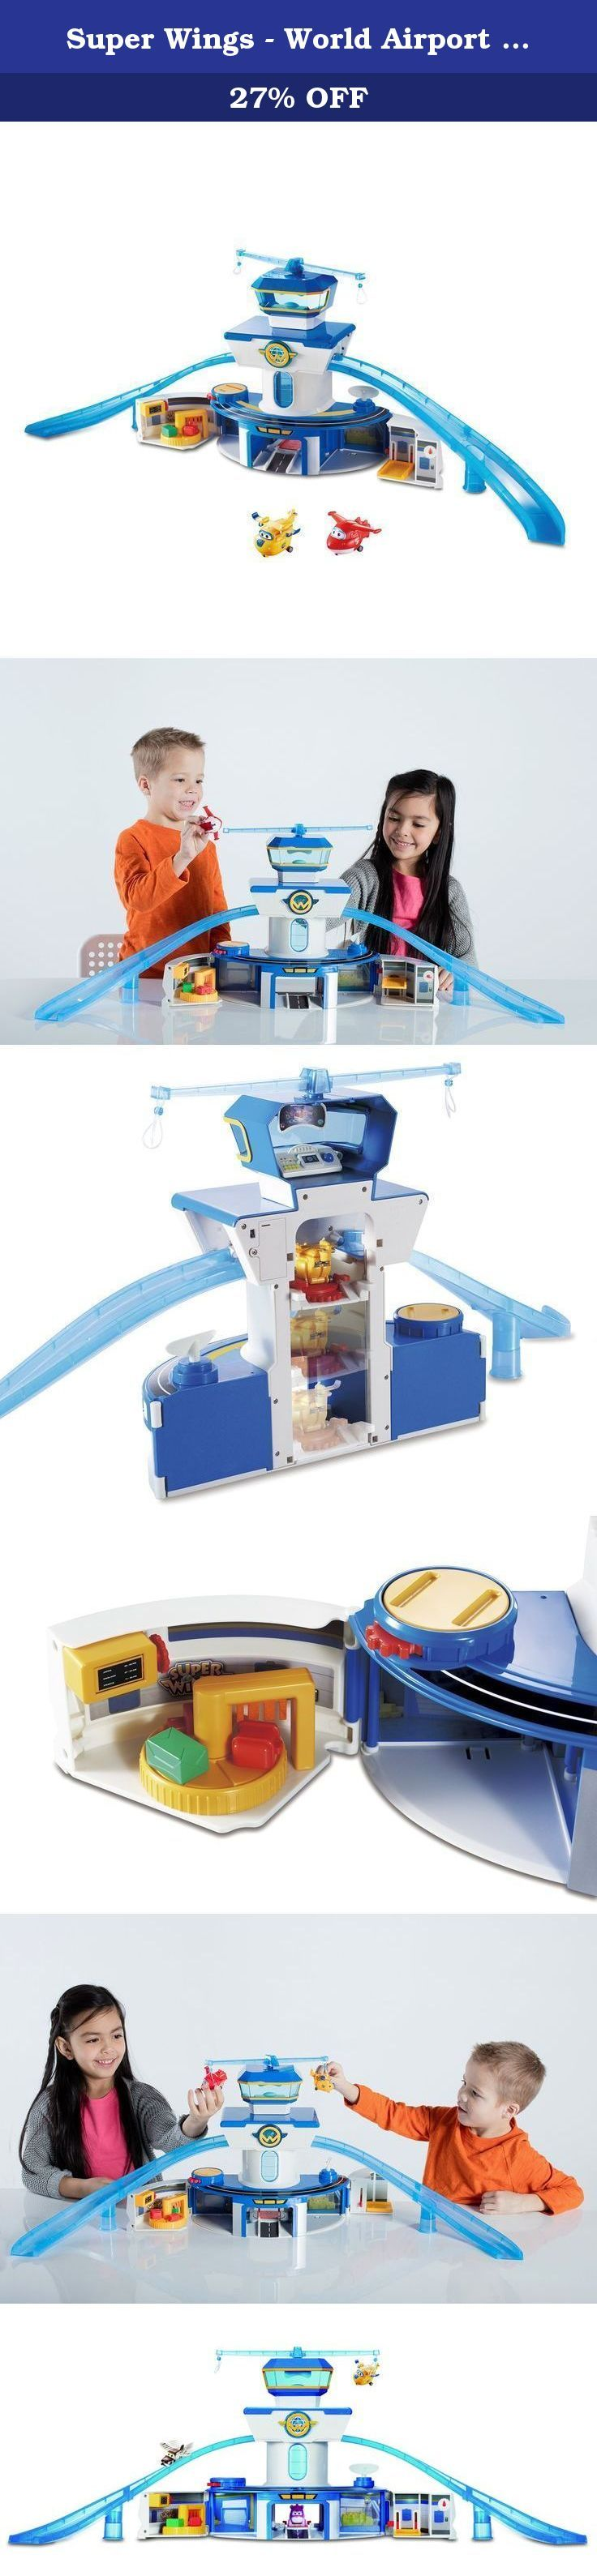 Super Wings - World Airport Playset. It's fly time! The iconic world airport from the popular Super Wings TV show sets the stage for this ultimate playset for preschool boys and girls. Its large 35-inch scale delivers loads of fun, with electronic sounds and lights plus tons of activities for kids to recreate their favorite Super Wings scenes and missions. This playset includes mini-transforming characters Jett and Donnie that can attach to the fly-bar and spin to circle the world airport...